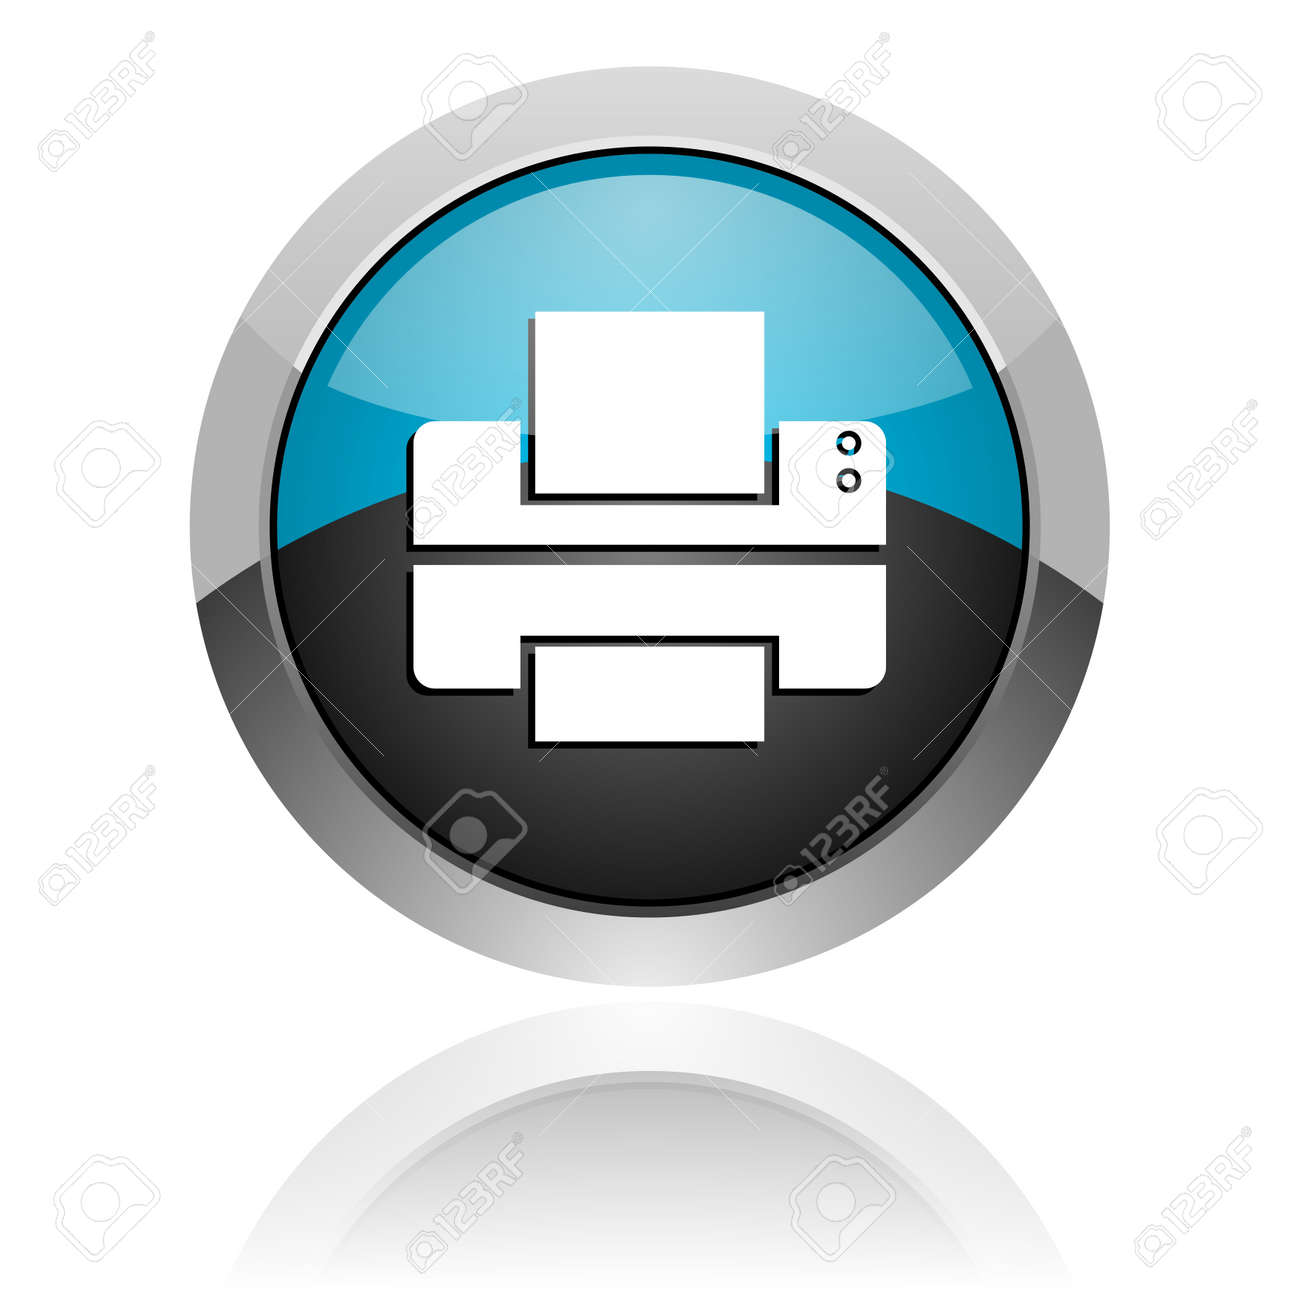 printer icon Stock Photo - 14805191